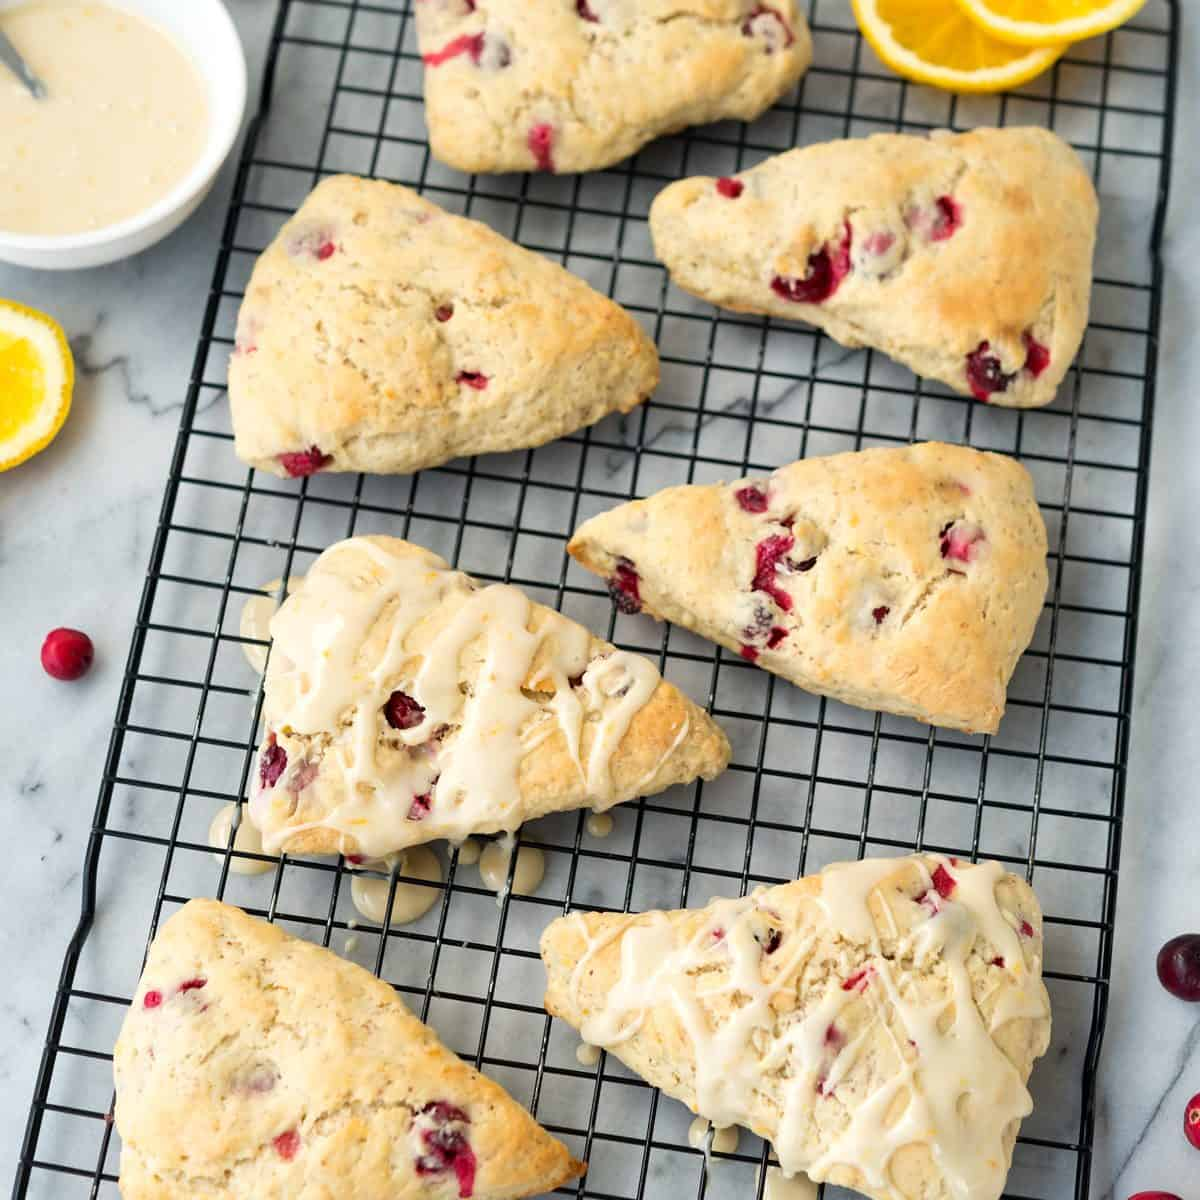 Delicious Glazed Cranberry Orange Scones, gone #vegan! Easy-to-make and so delicious. #soyfree #dairyfree #nutfree @VeganYackAttack